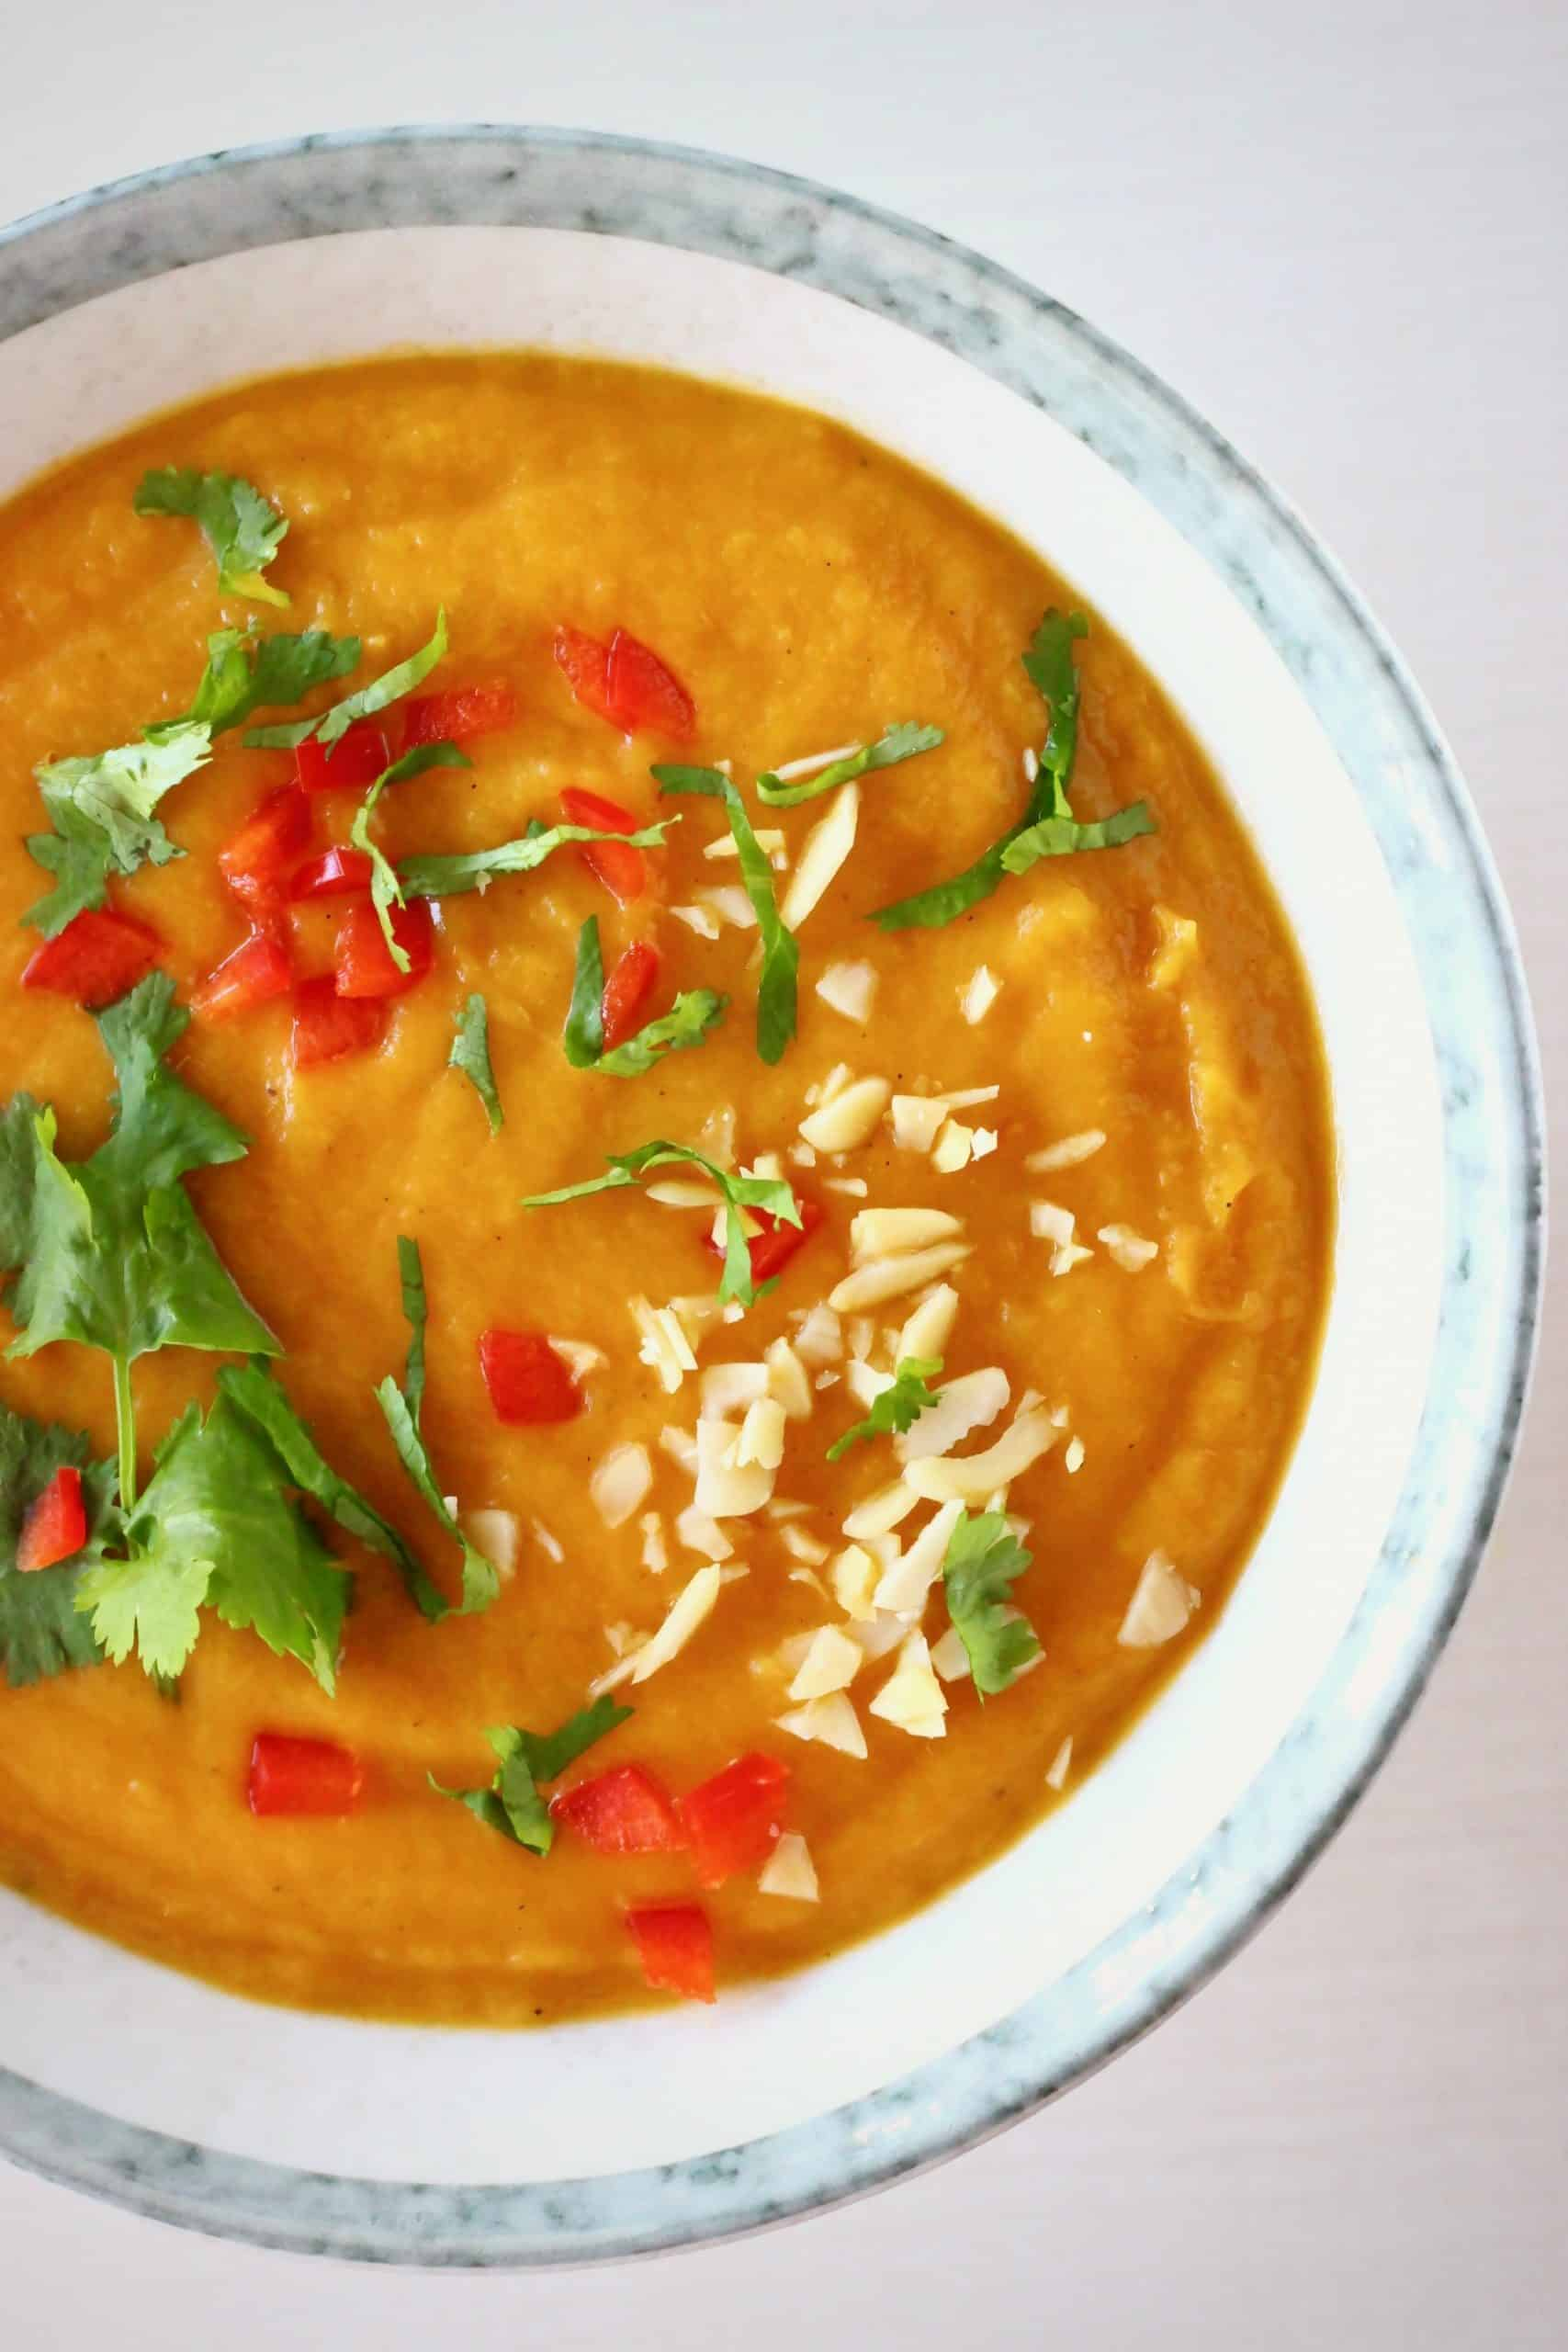 Sweet potato peanut soup in a white bowl